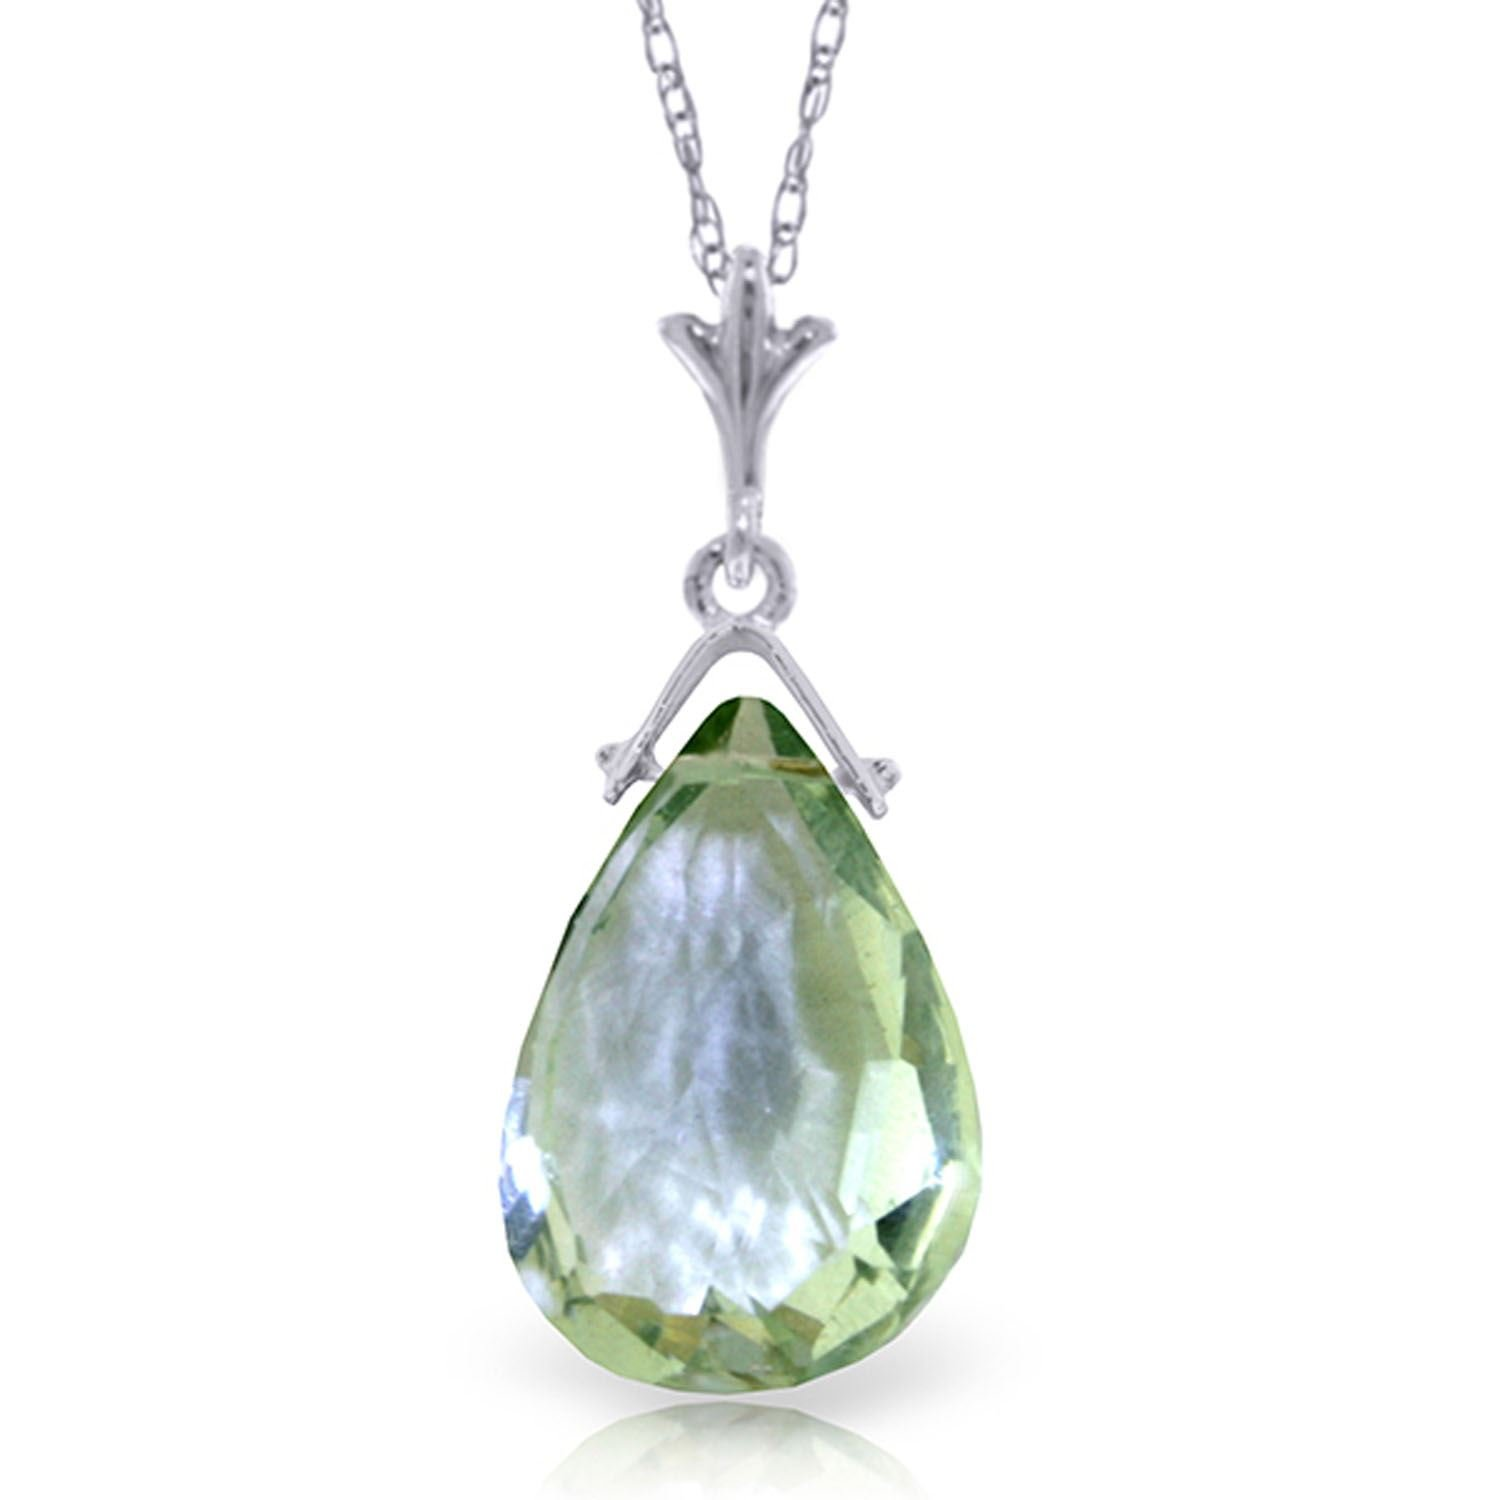 ALARRI 5.1 Carat 14K Solid White Gold Necklace Briolette Green Amethyst with 18 Inch Chain Length by ALARRI (Image #1)